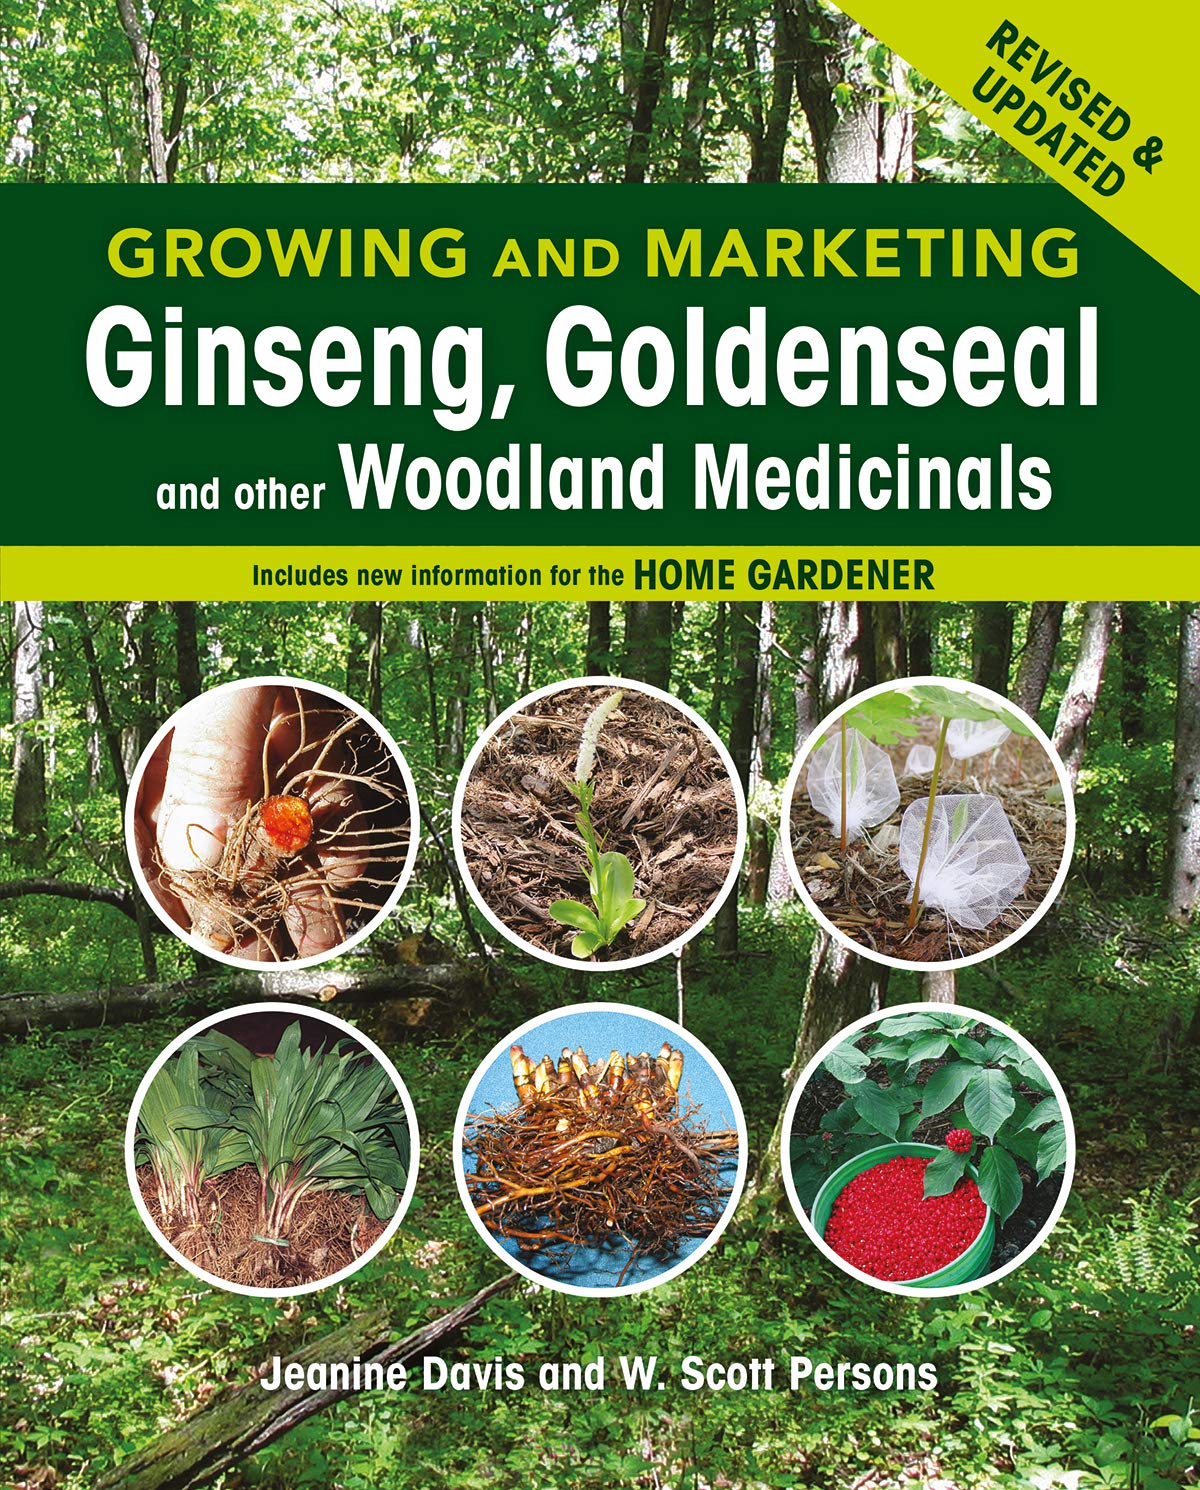 Growing and Marketing Ginseng, Goldenseal and other Woodland